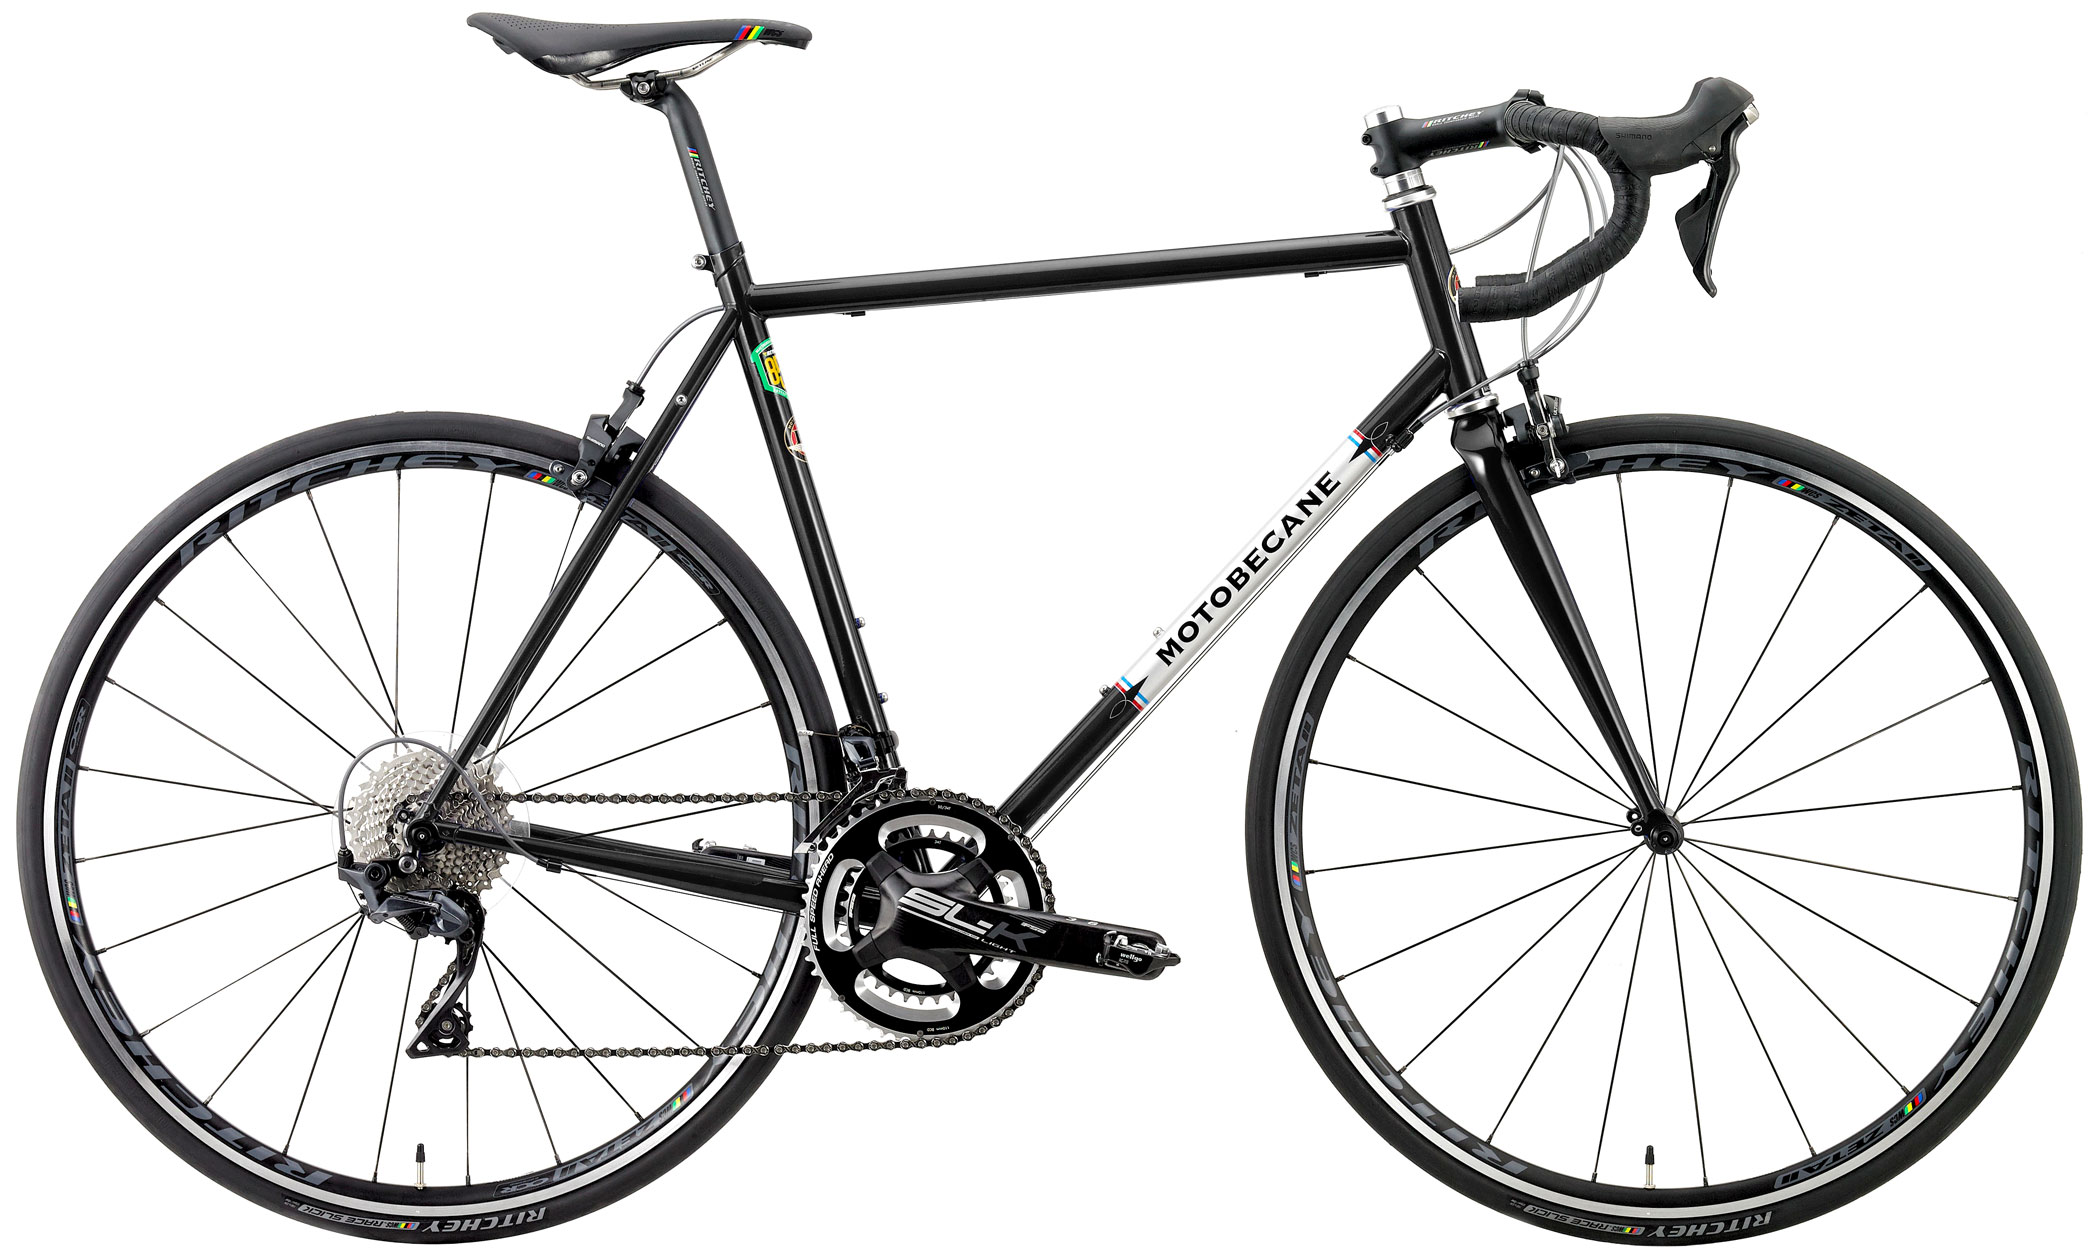 Save Up To 60% Off Pro Level Steel Road Bikes FREE SHIP 48